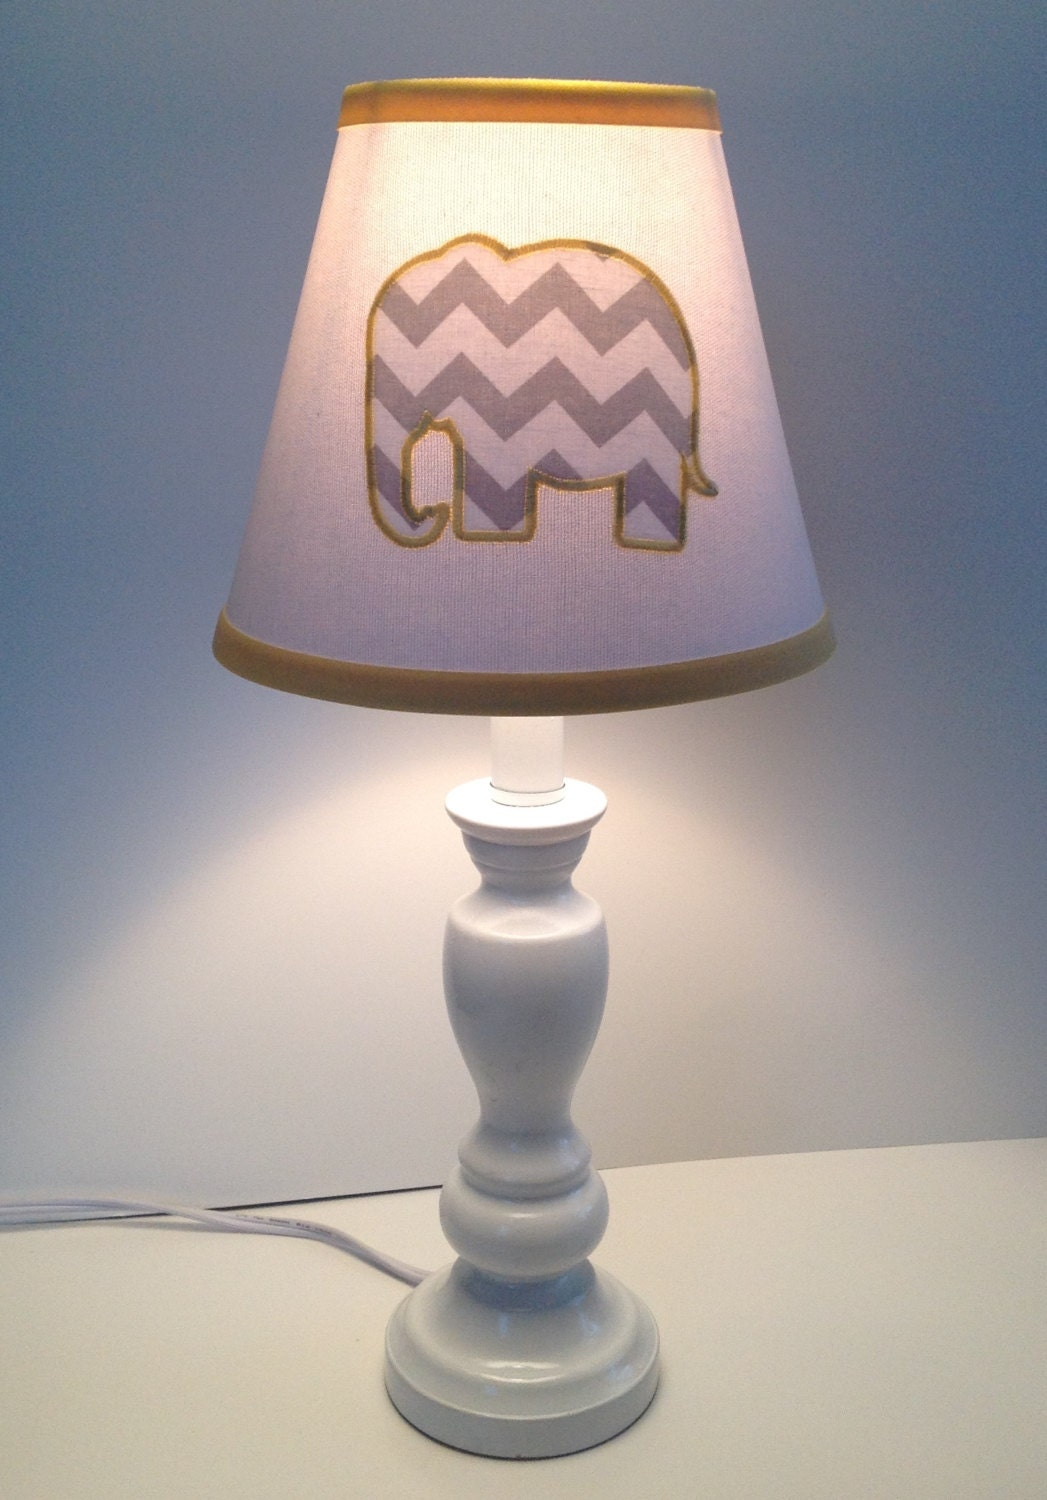 applique elephant nursery lamp shade white background gray. Black Bedroom Furniture Sets. Home Design Ideas